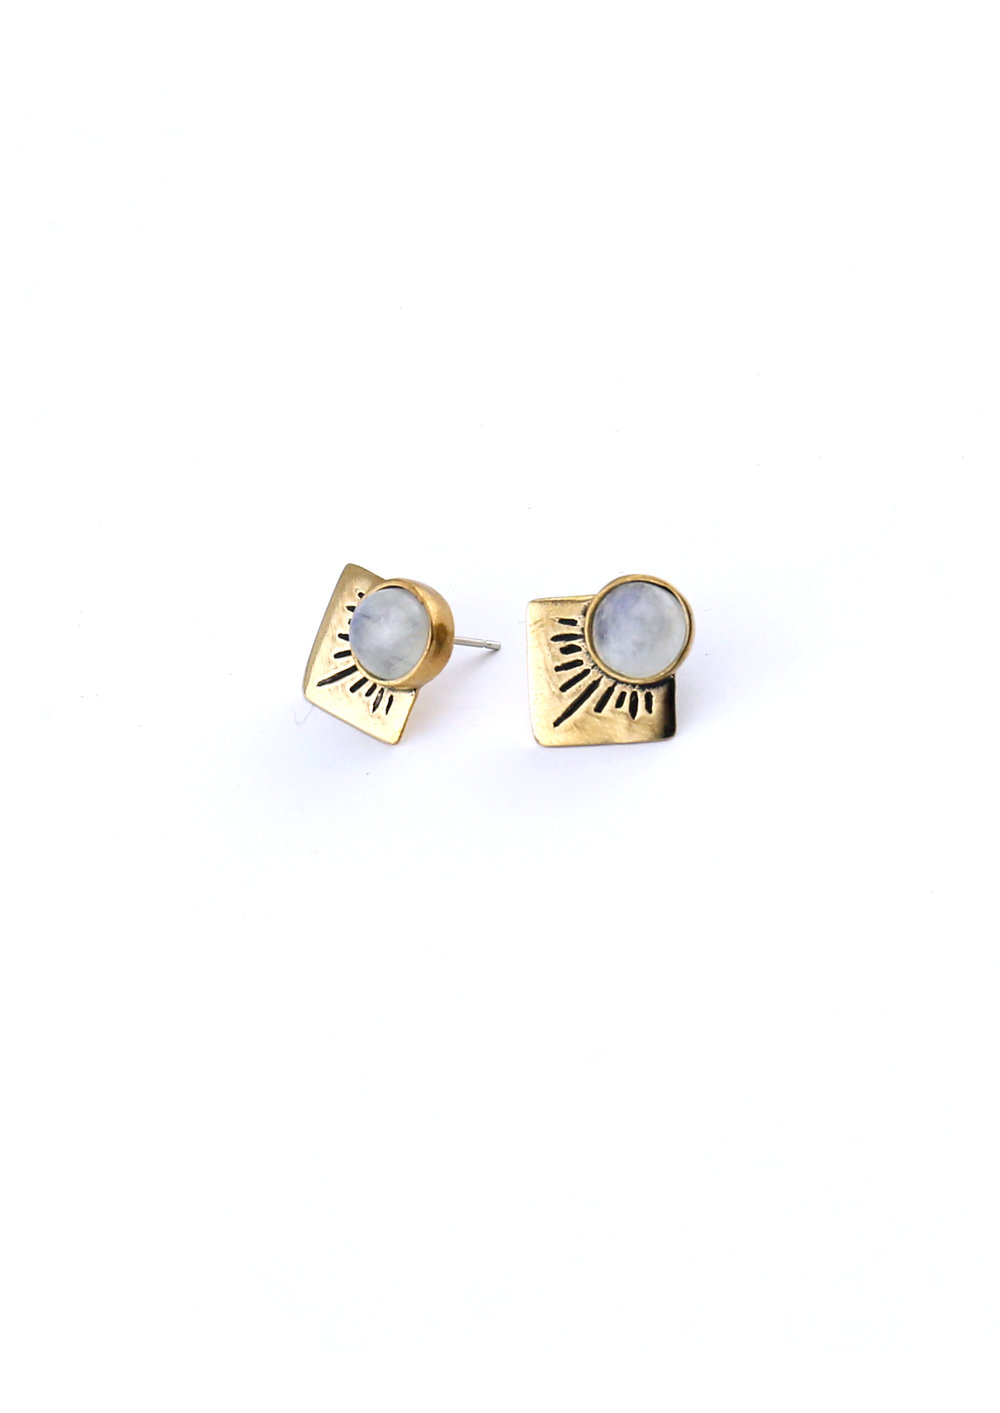 isobell-design-stud-earrings-gold.jpg